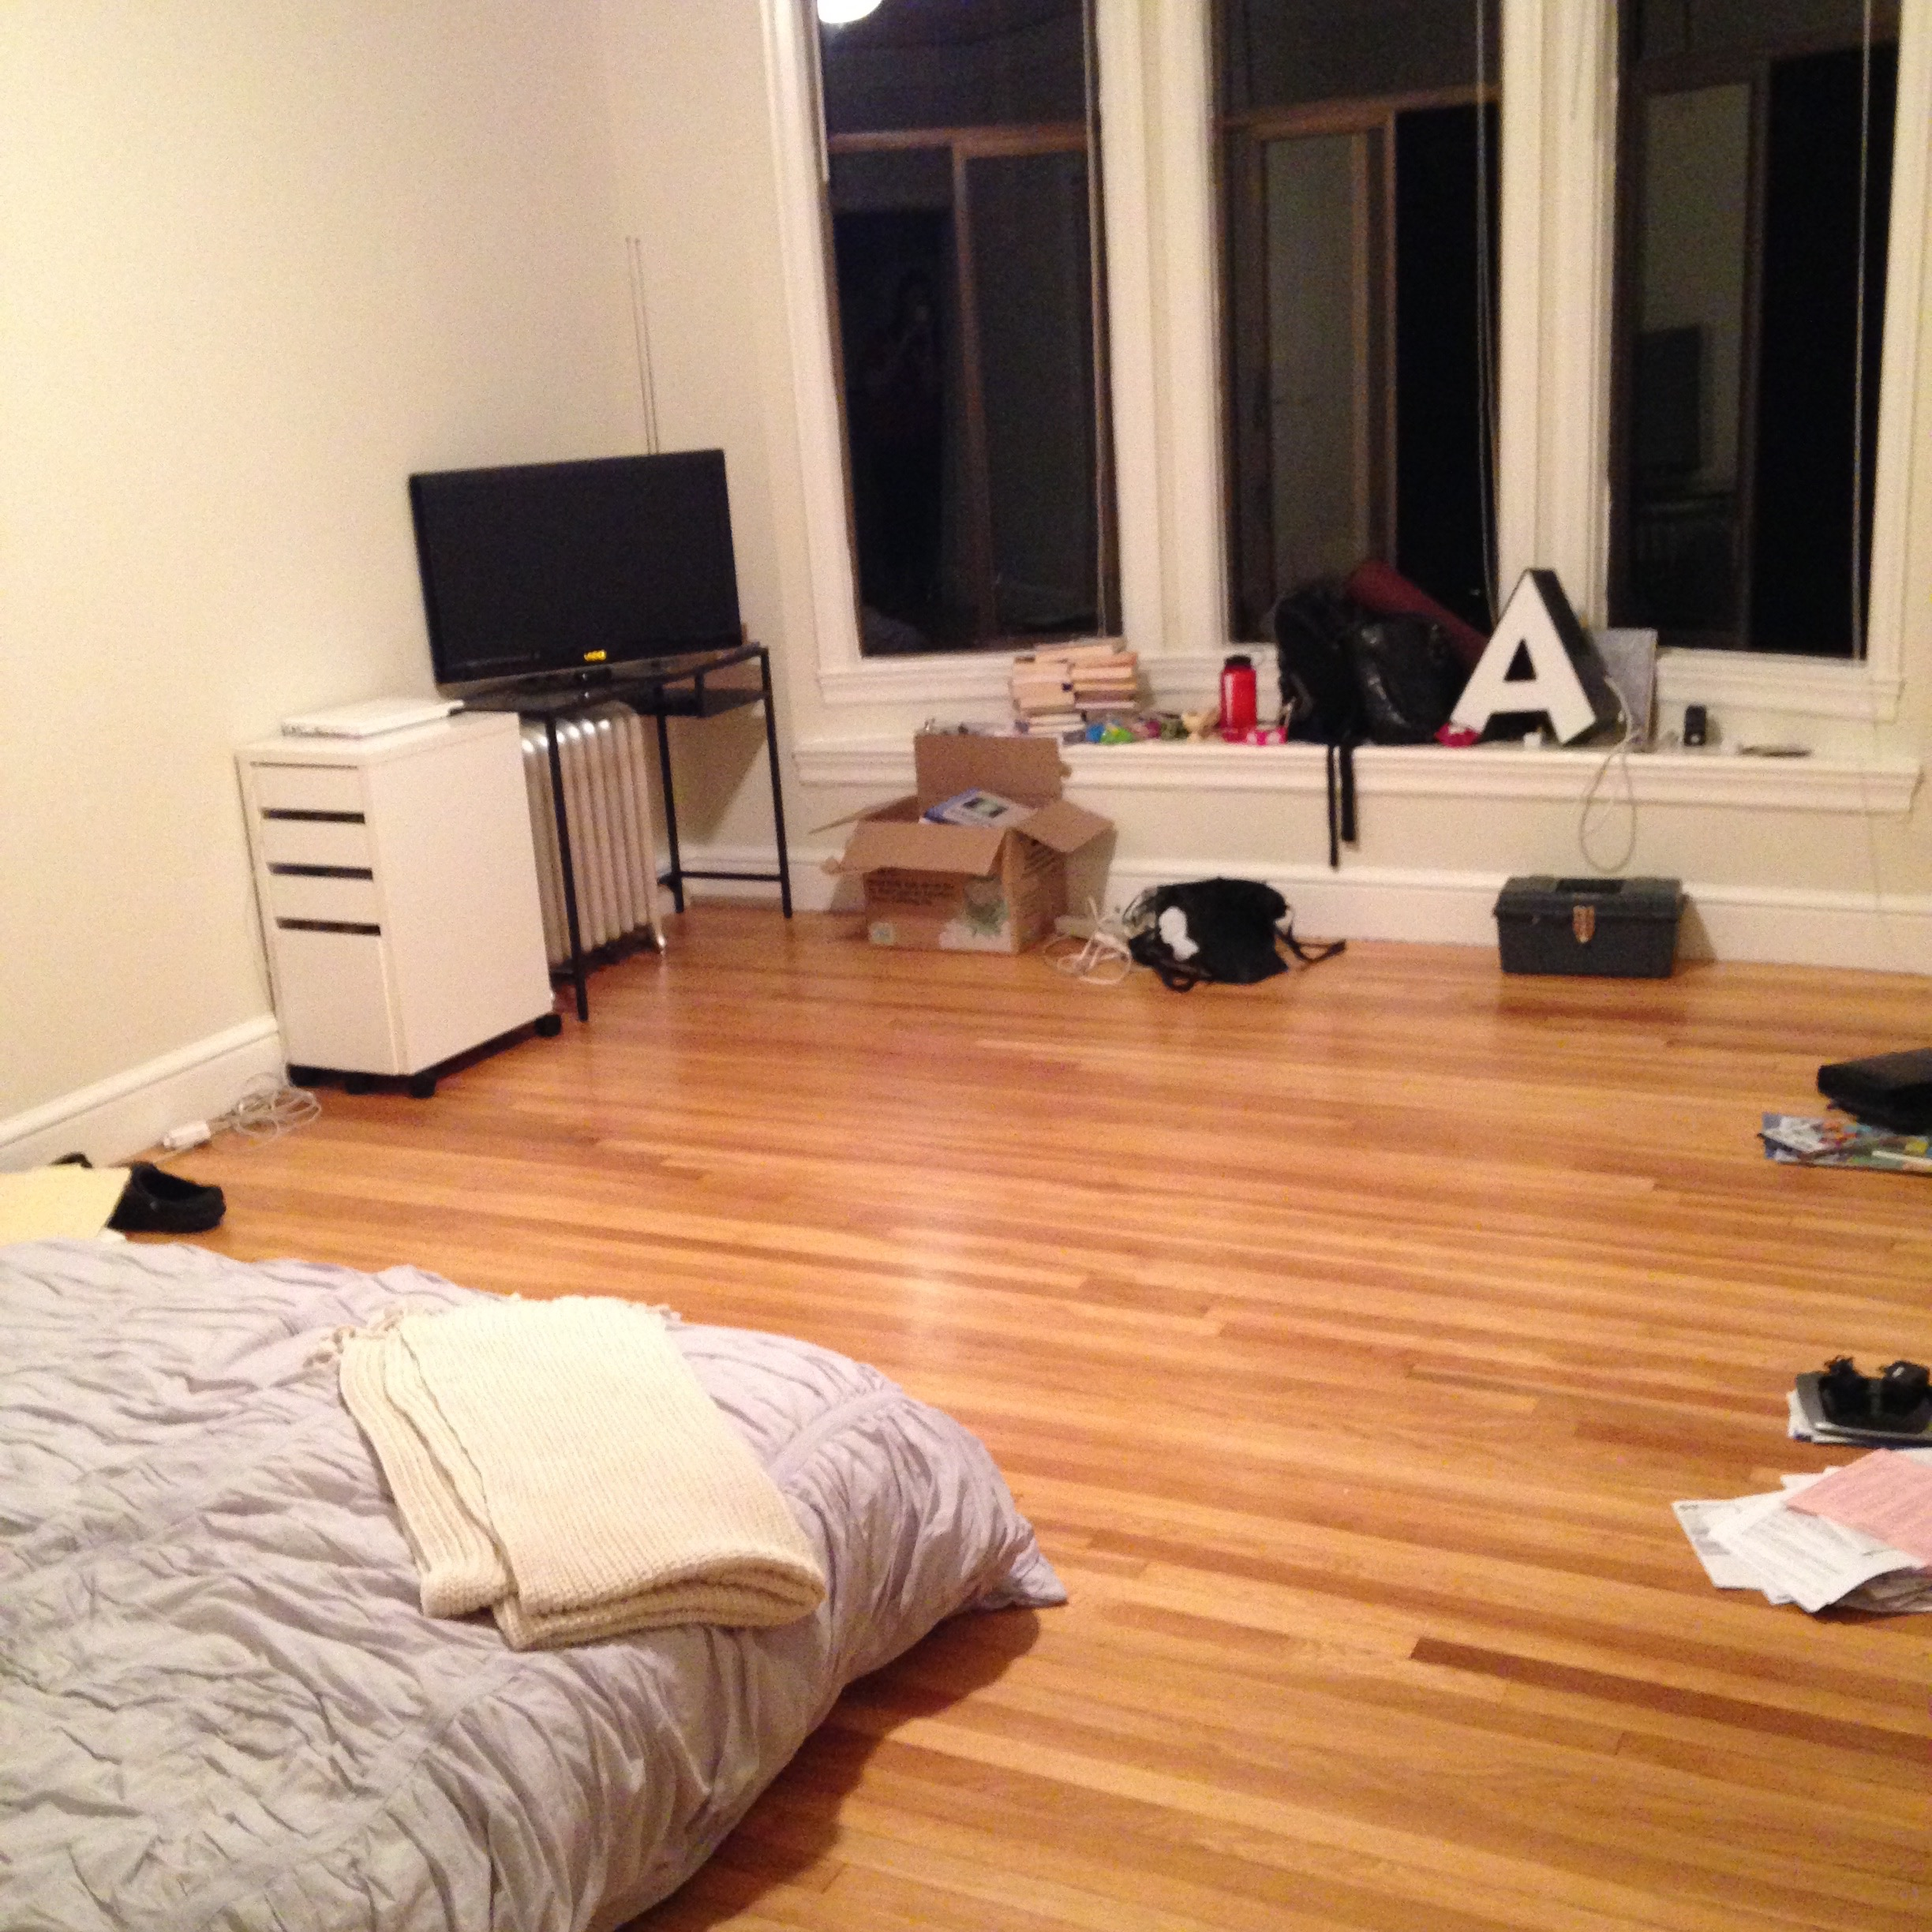 Making a little bit of progress. No furniture, but at least the boxes are unpacked!